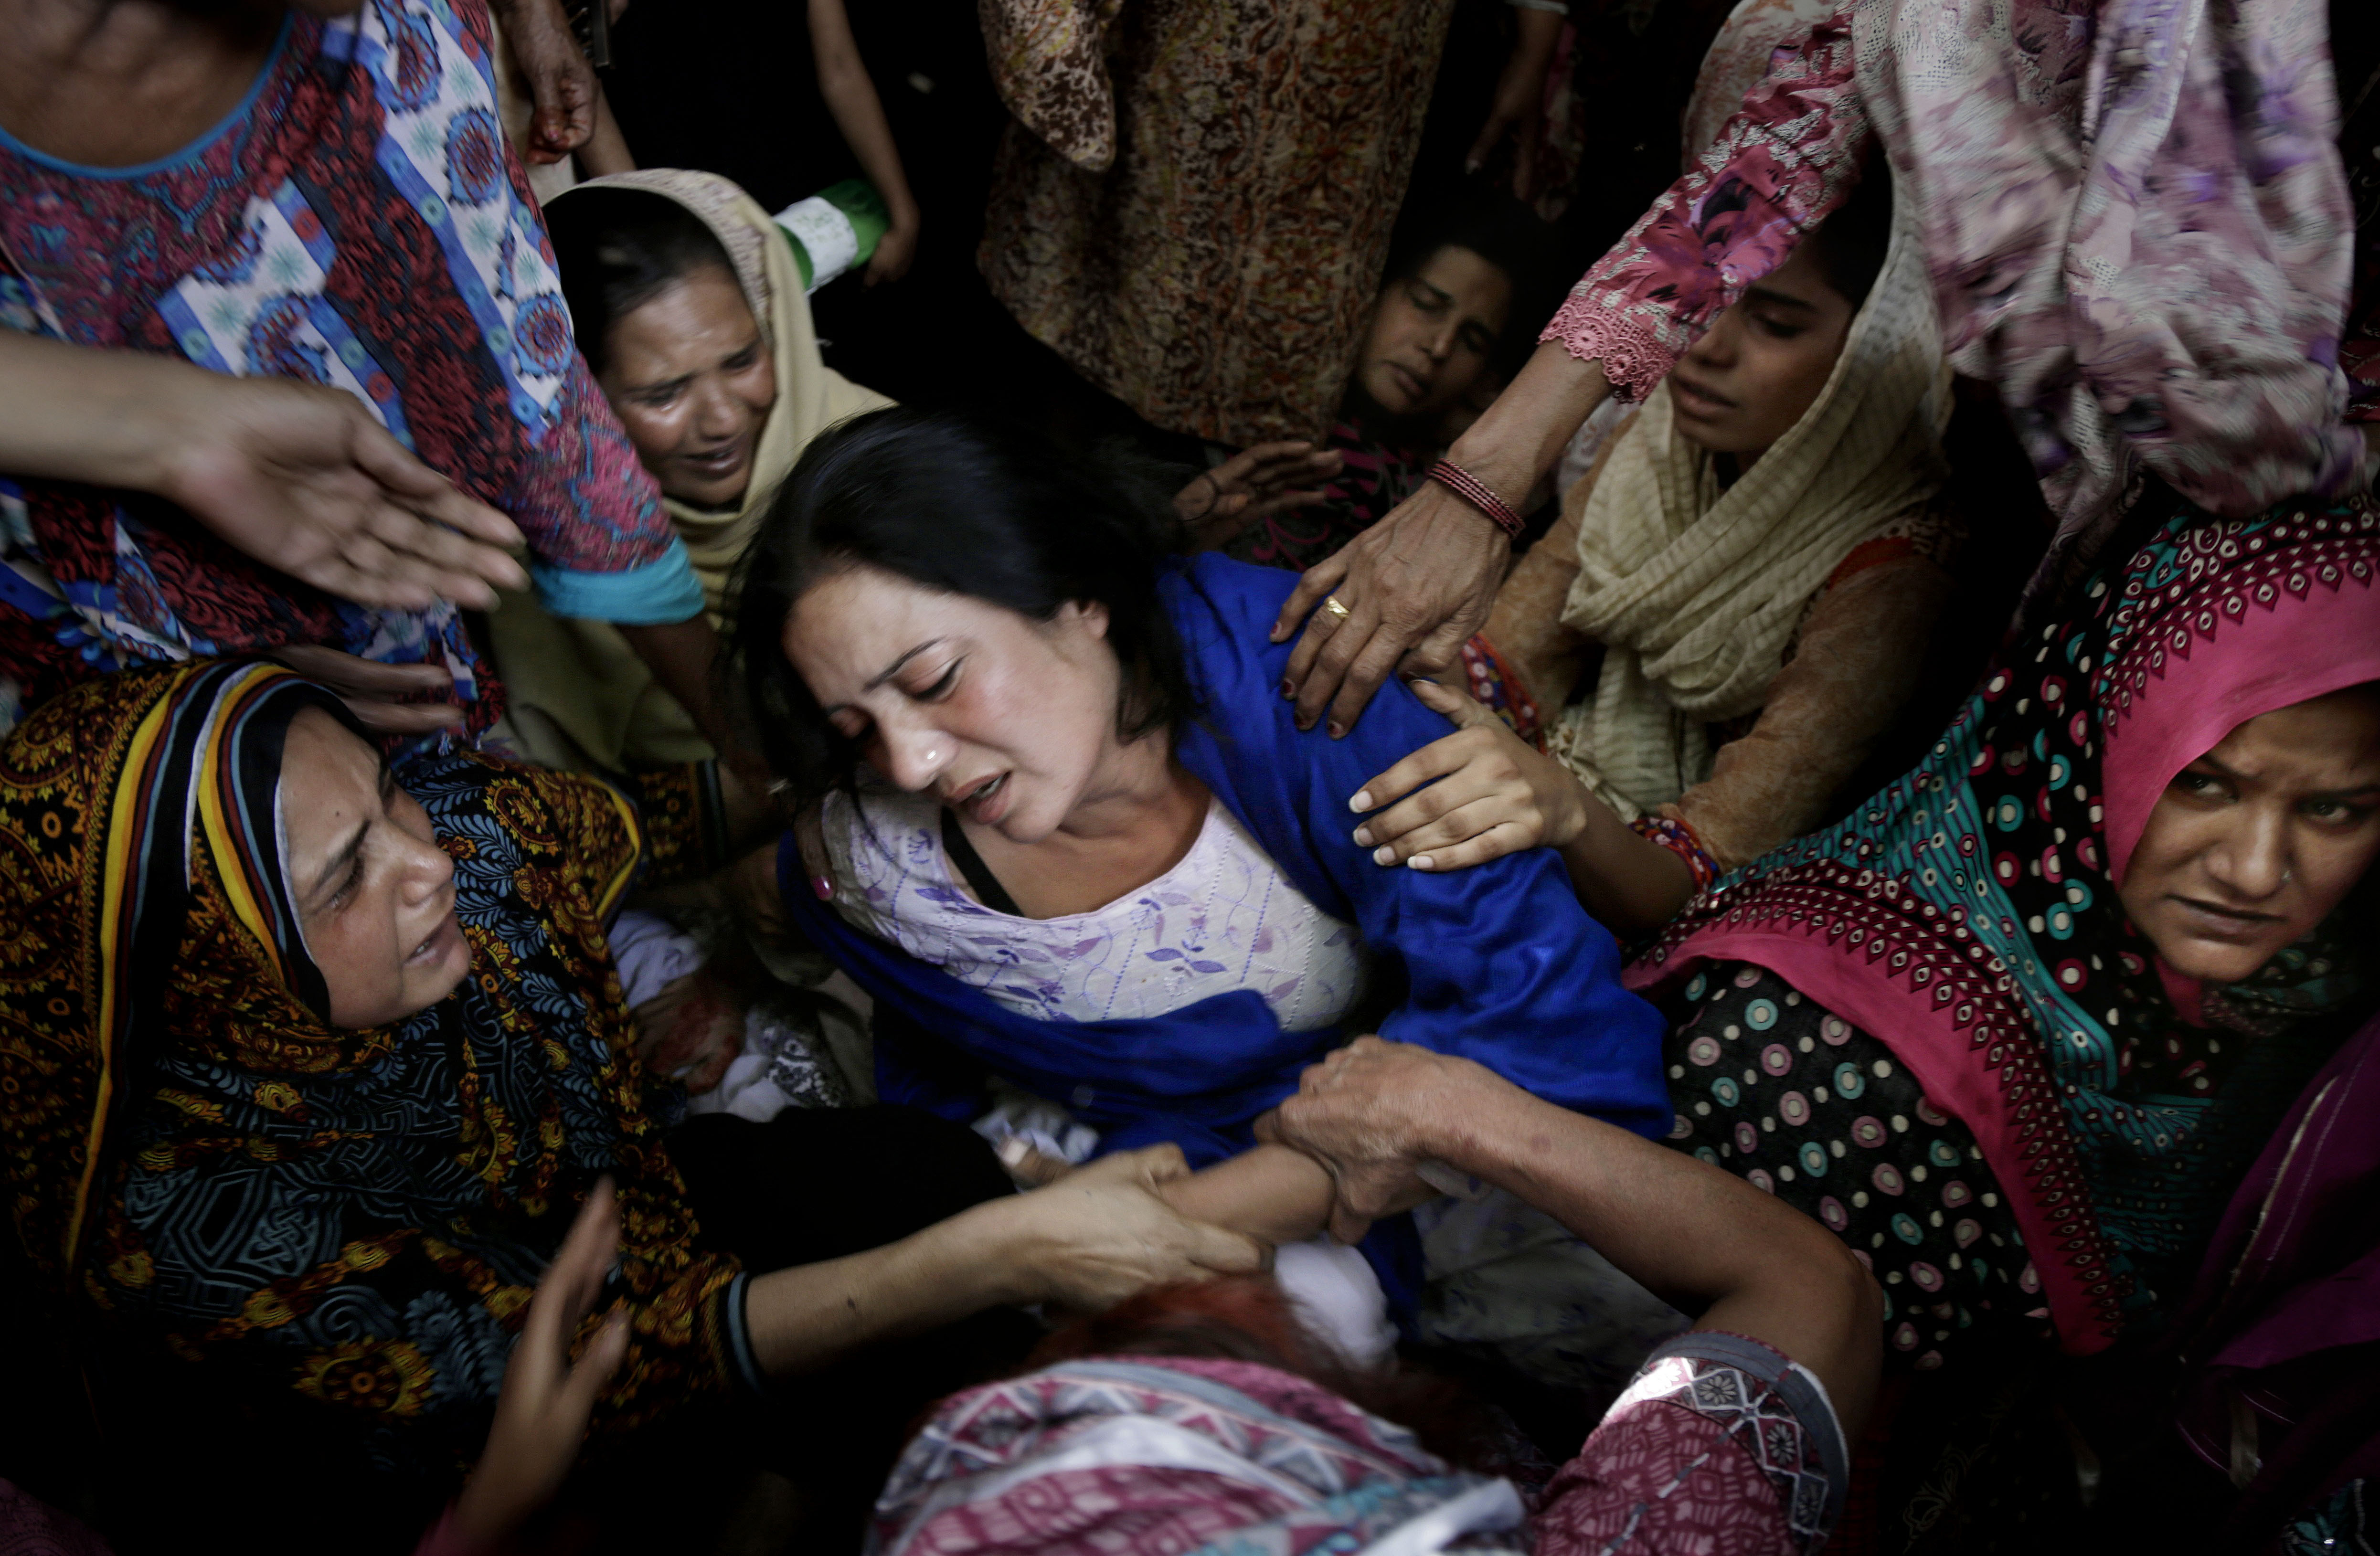 Women try to comfort a mother who lost her son in bomb attack in Lahore, Pakistan, March 28, 2016.